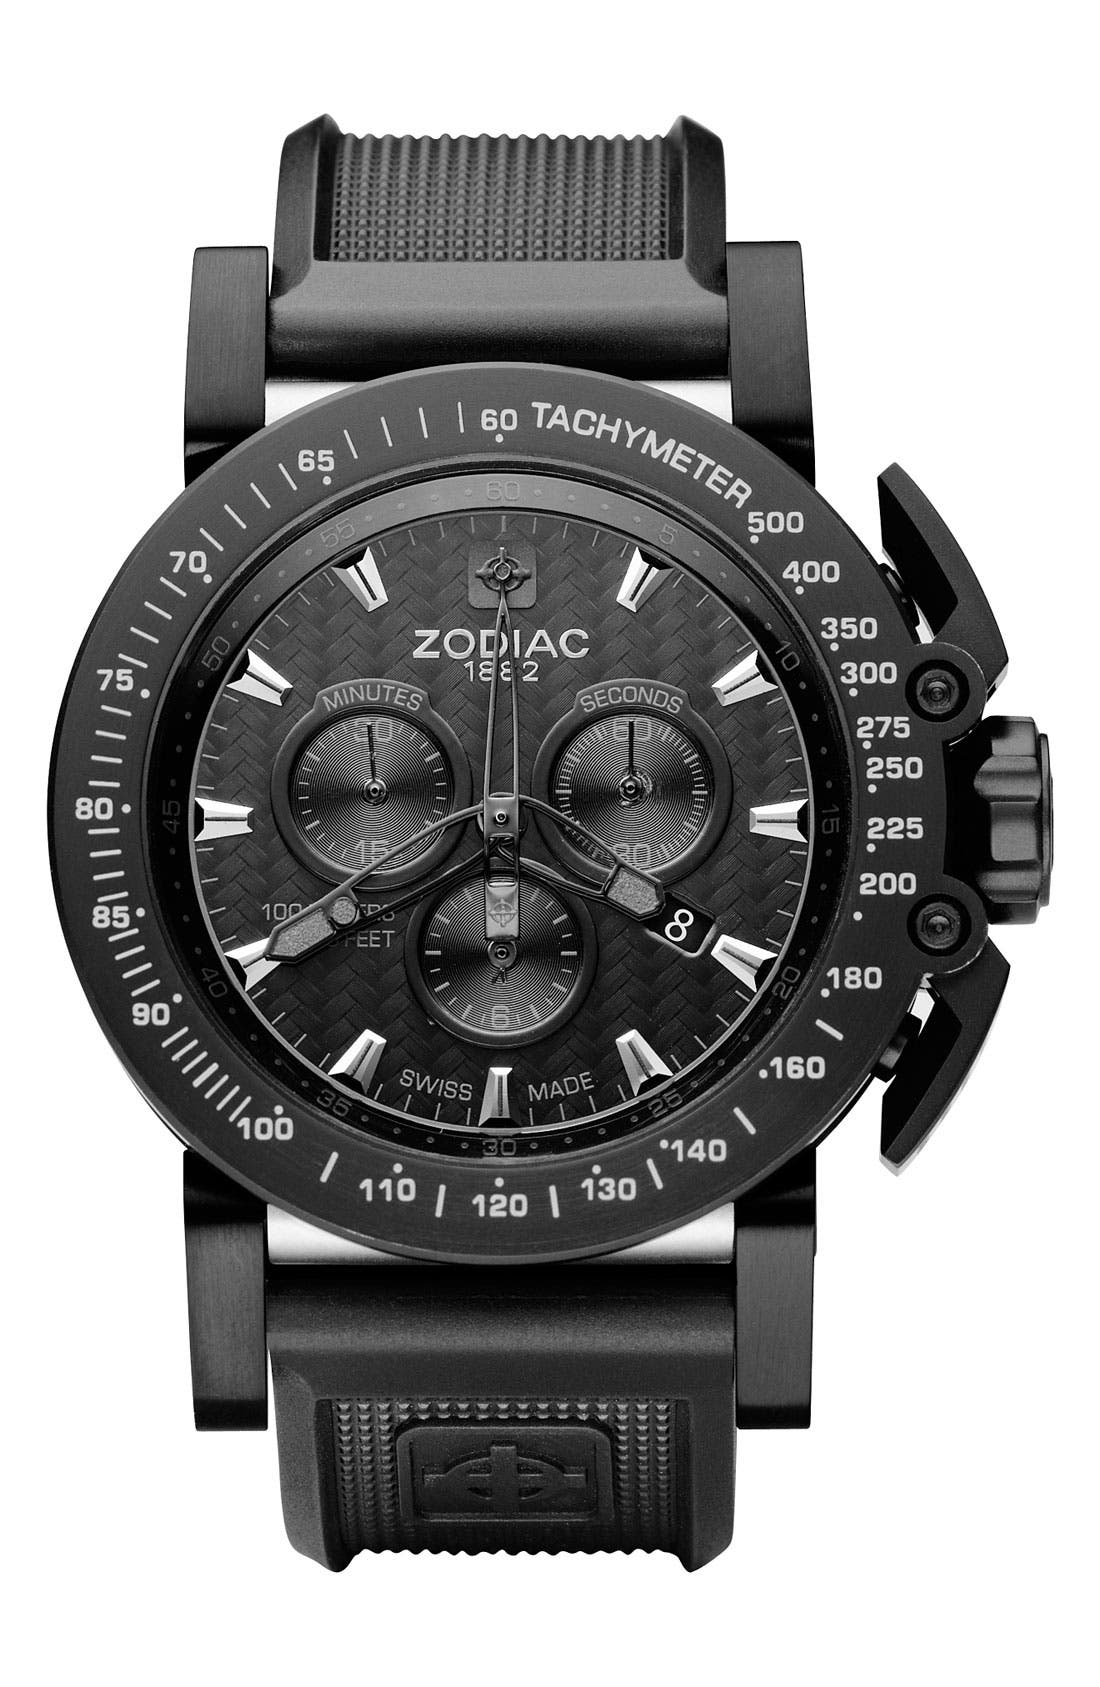 Main Image - Zodiac Chronograph Watch